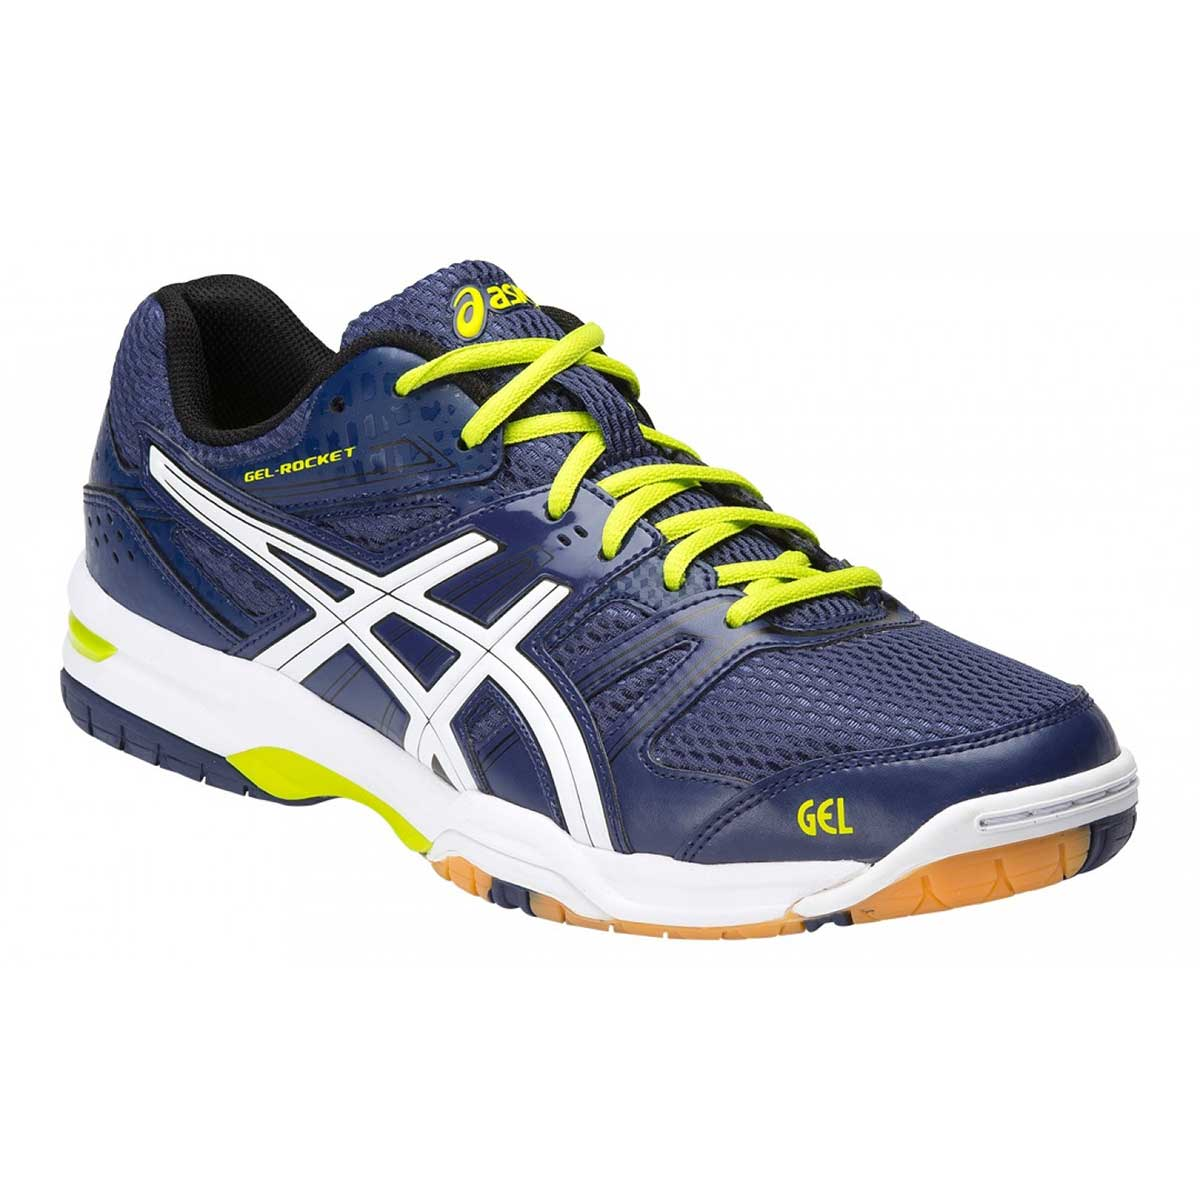 Squash Shoes, Squash, Sports, Buy, Asics, Asics Gel-Rocket 7 Squash Shoes  (Navy)